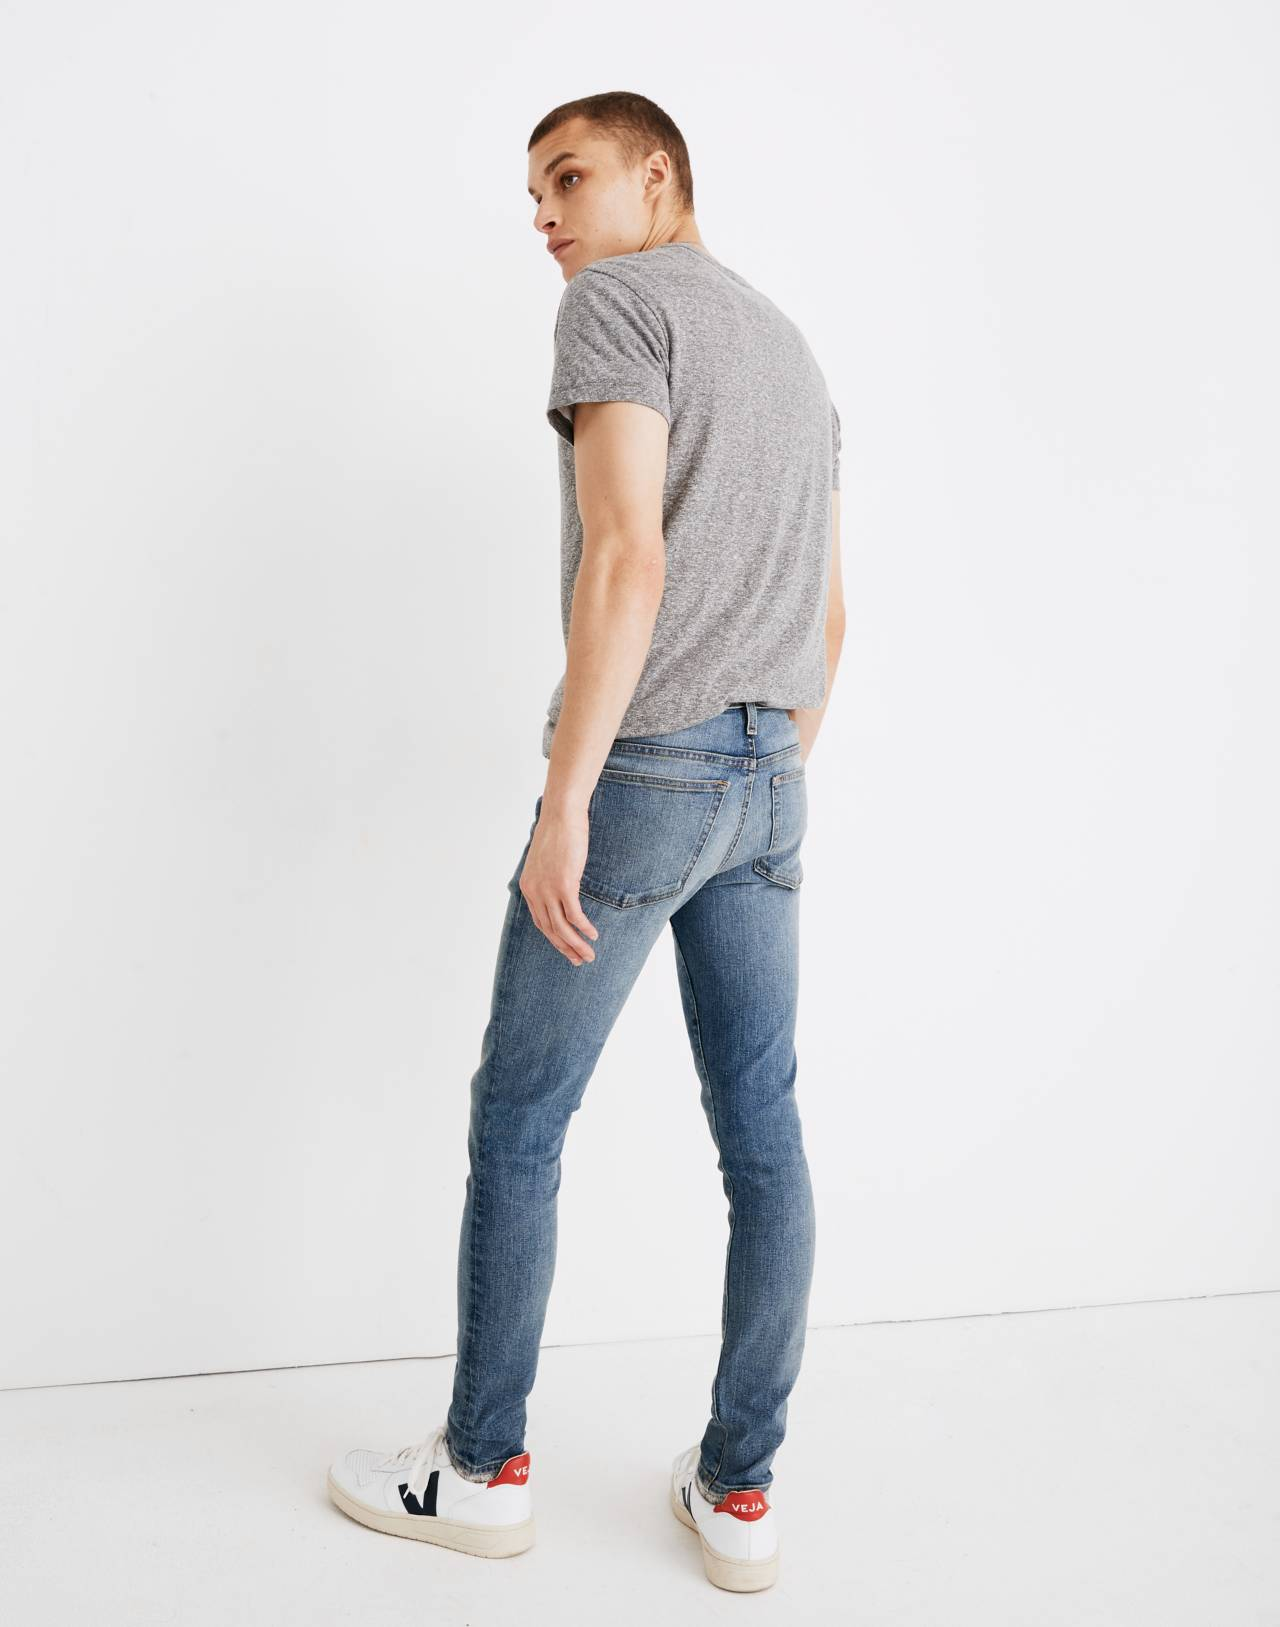 Skinny Jeans in Baywood Wash in baywood wash image 3